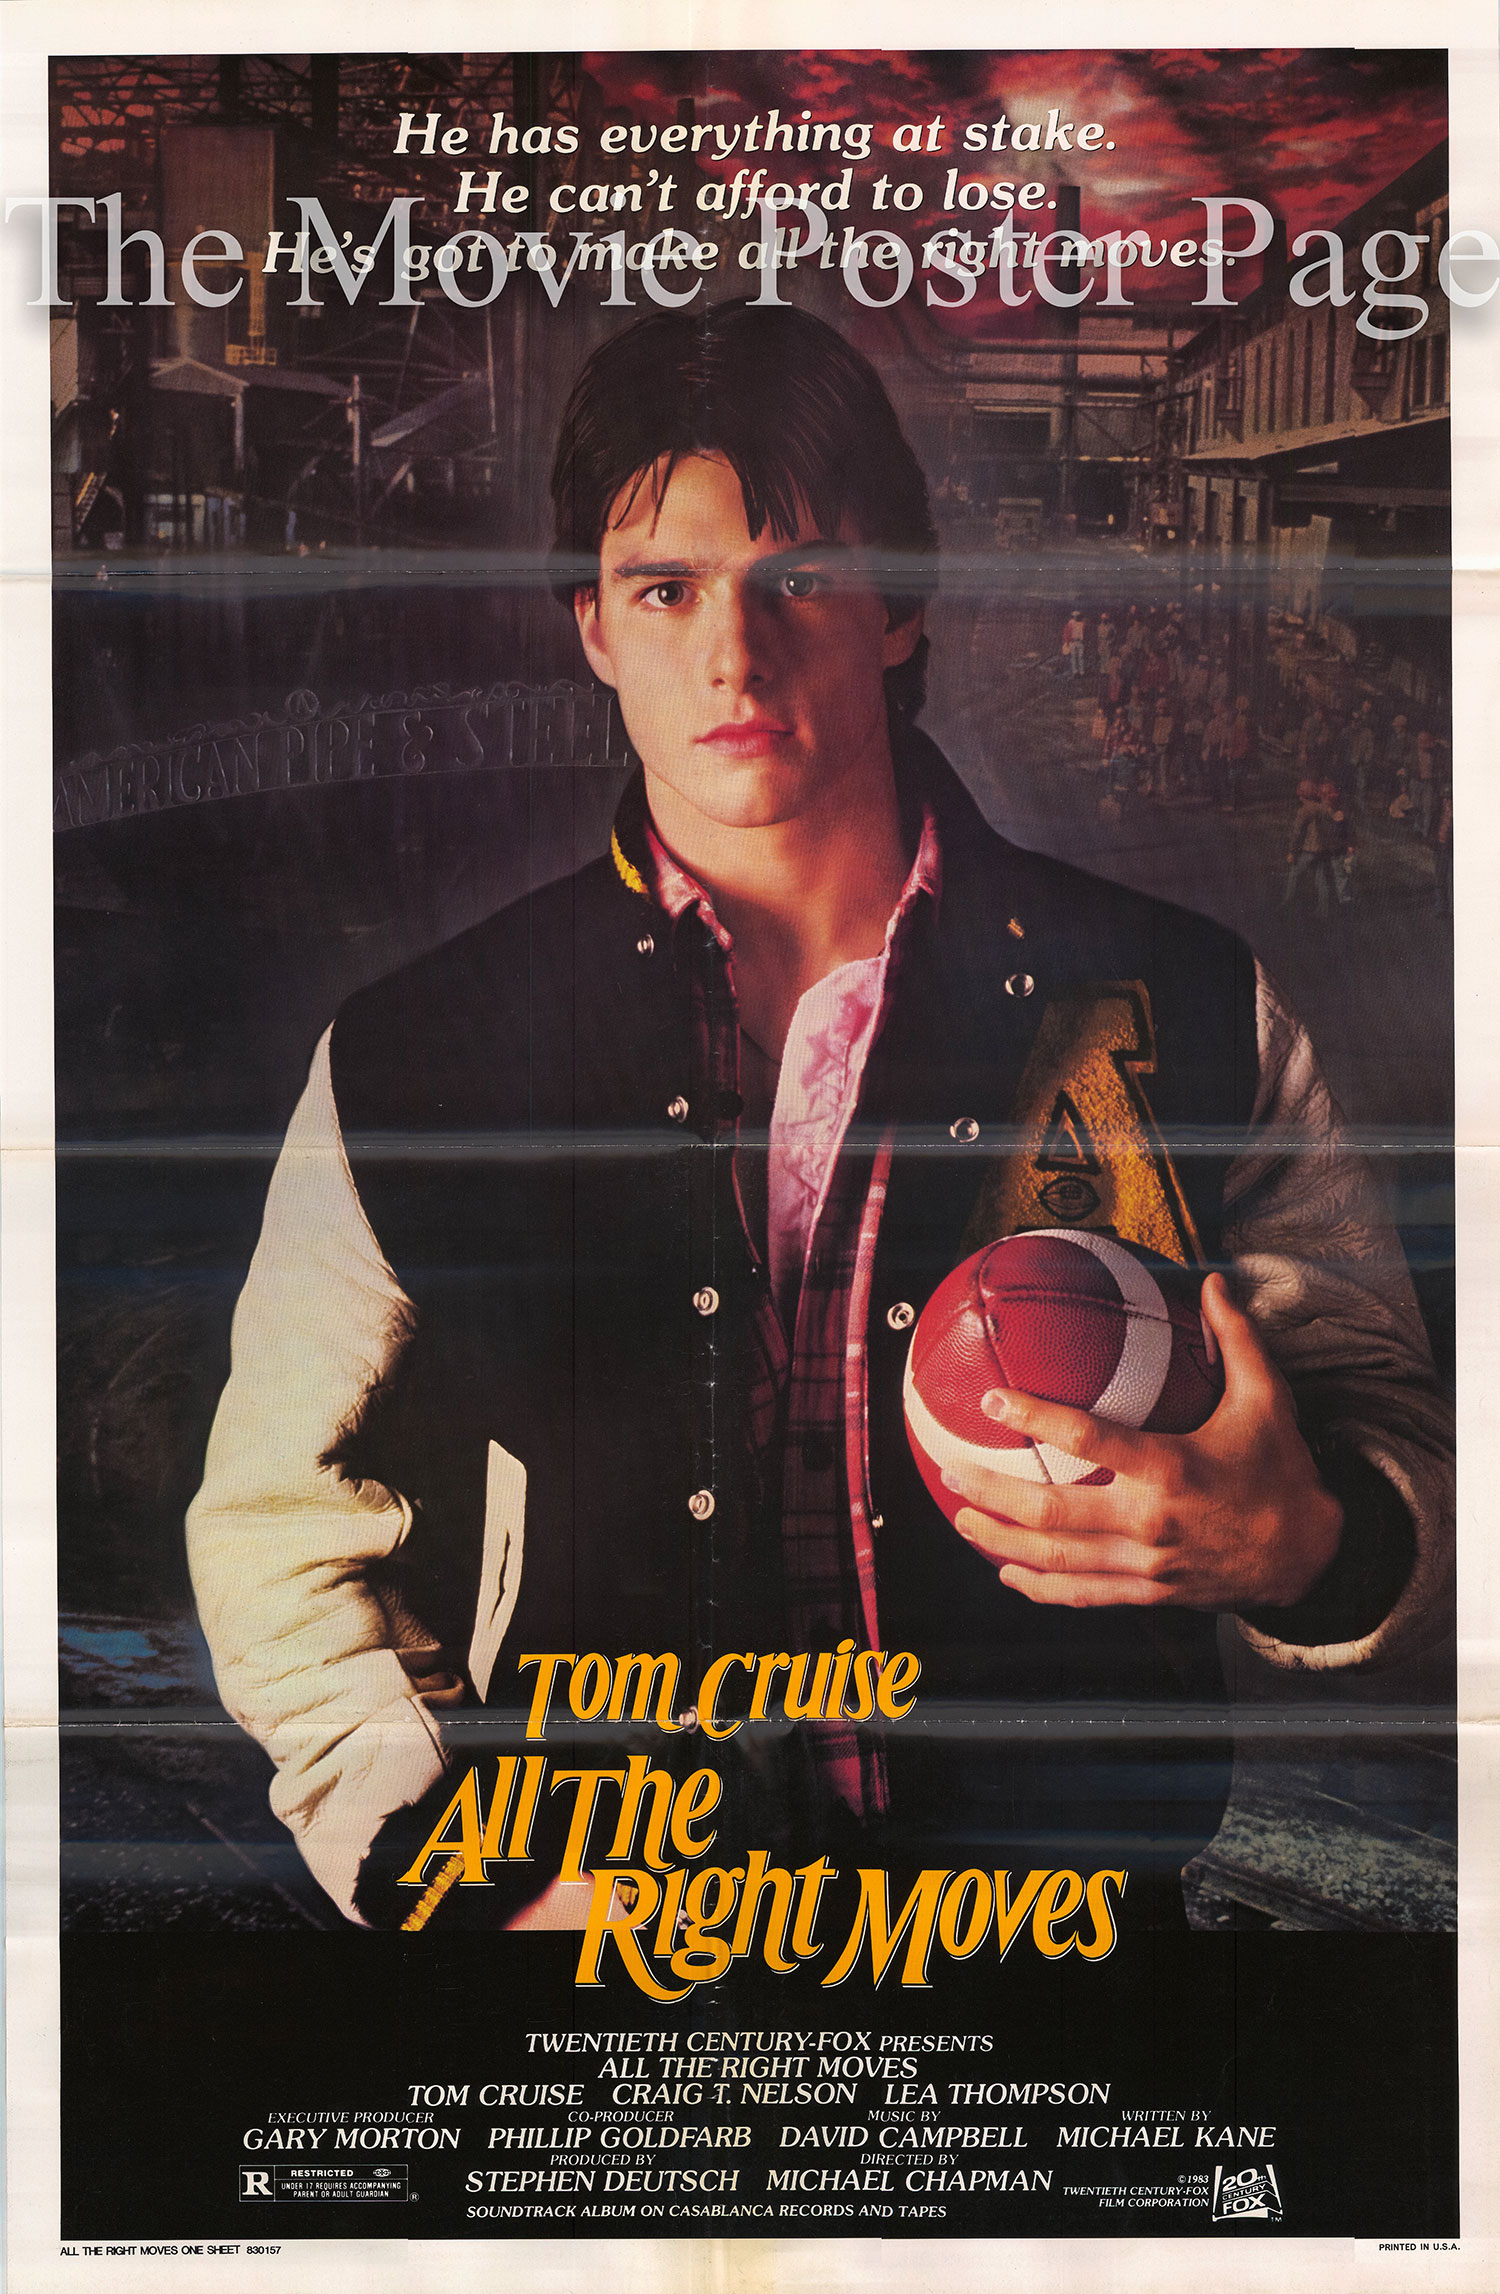 Pictured is a US poster for the 1983 Michael Chapman film All the Right Moves starring Tom Cruise.